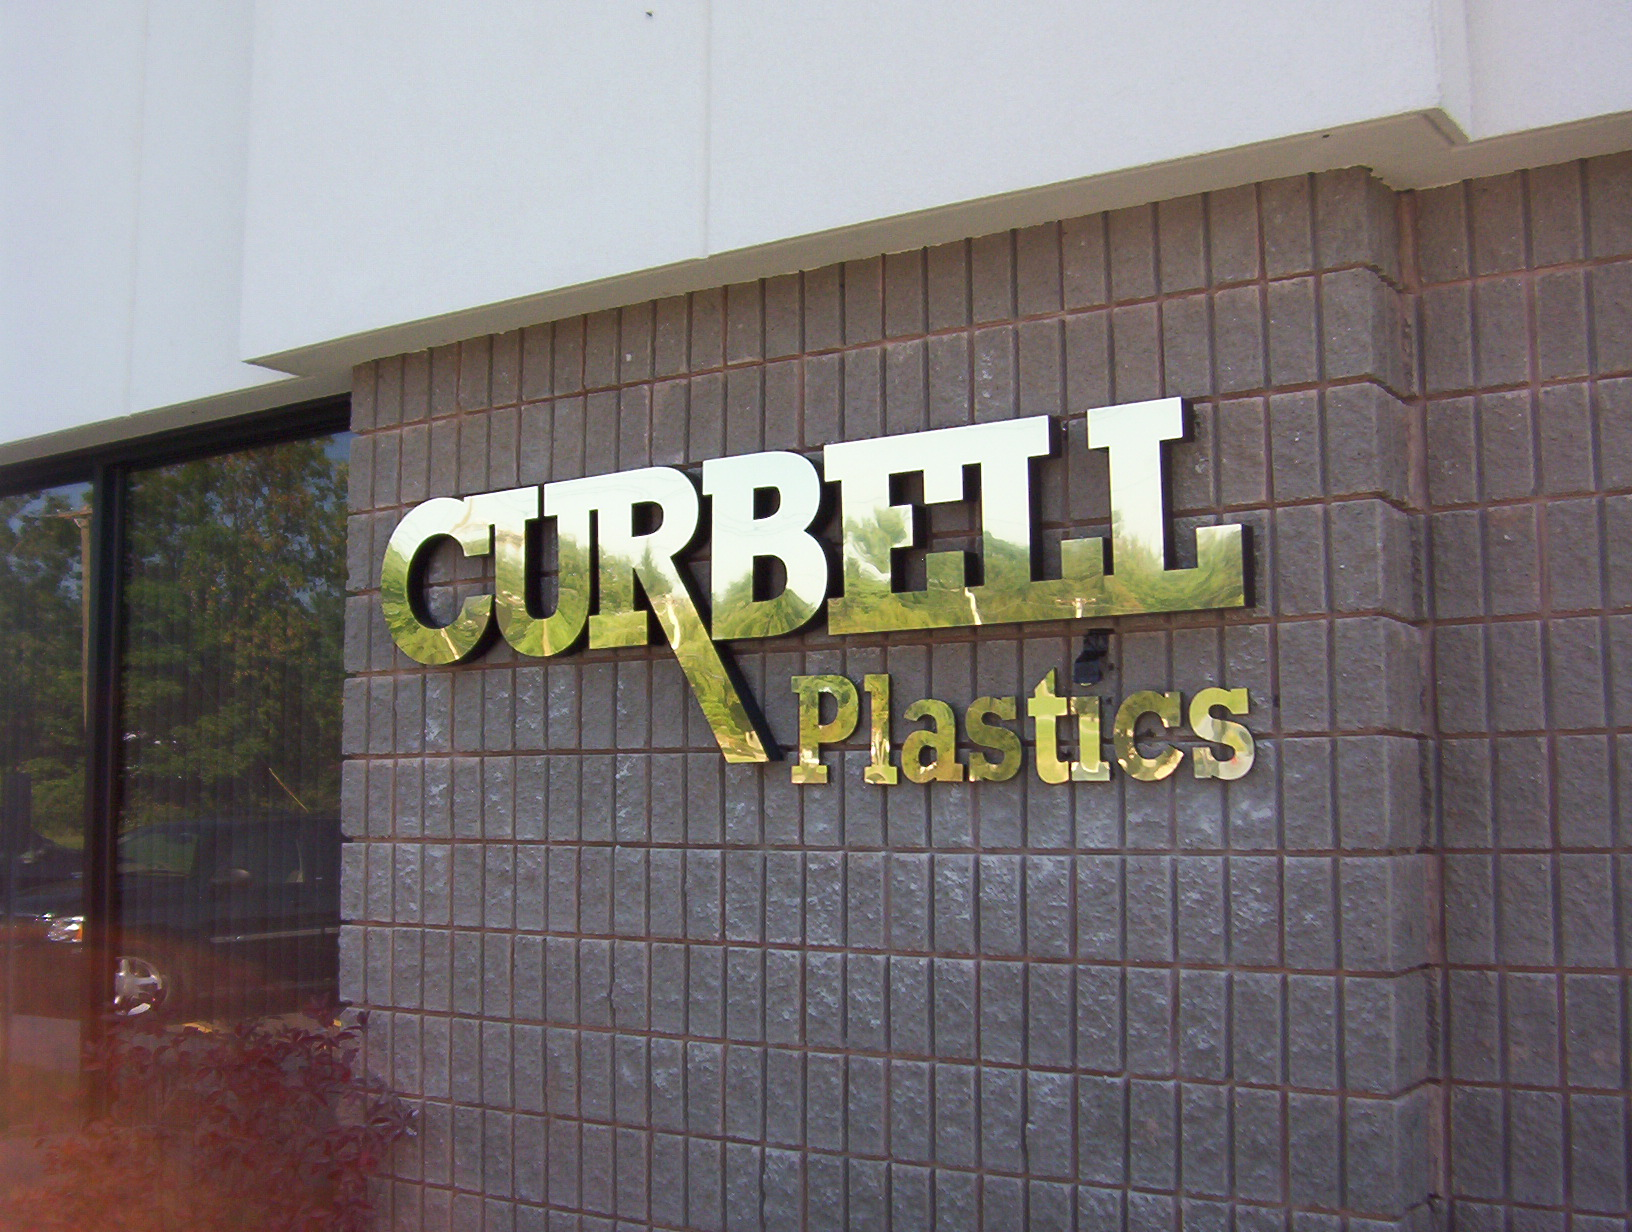 Curbell Paul Road1.JPG